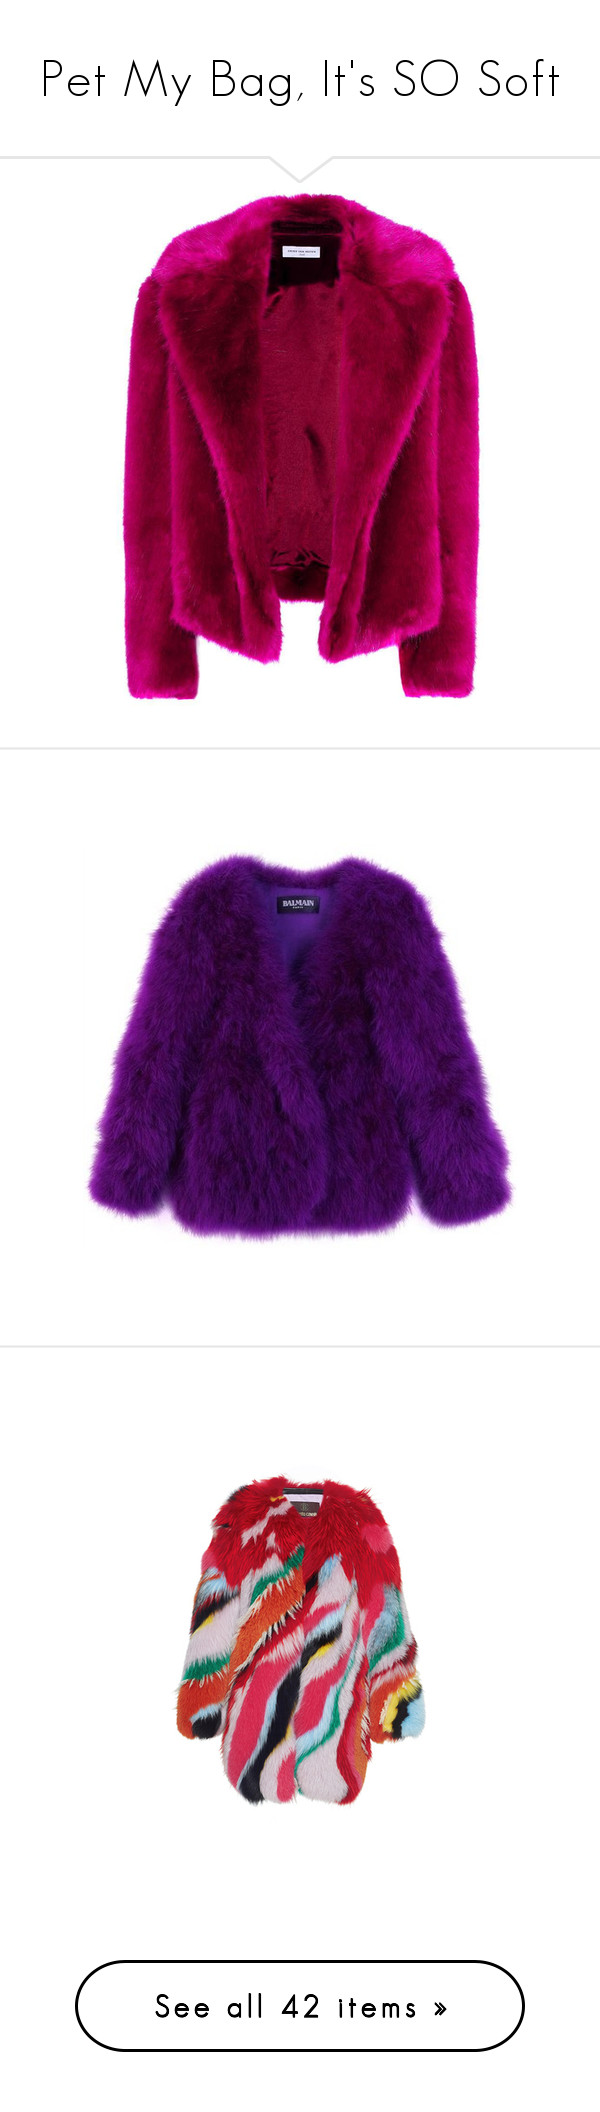 """Pet My Bag, It's SO Soft"" by purplerox24 ❤ liked on Polyvore featuring outerwear, coats, purple coats, dries van noten coat, dries van noten, faux fur coat, fake fur coat, jackets, fur and delete"